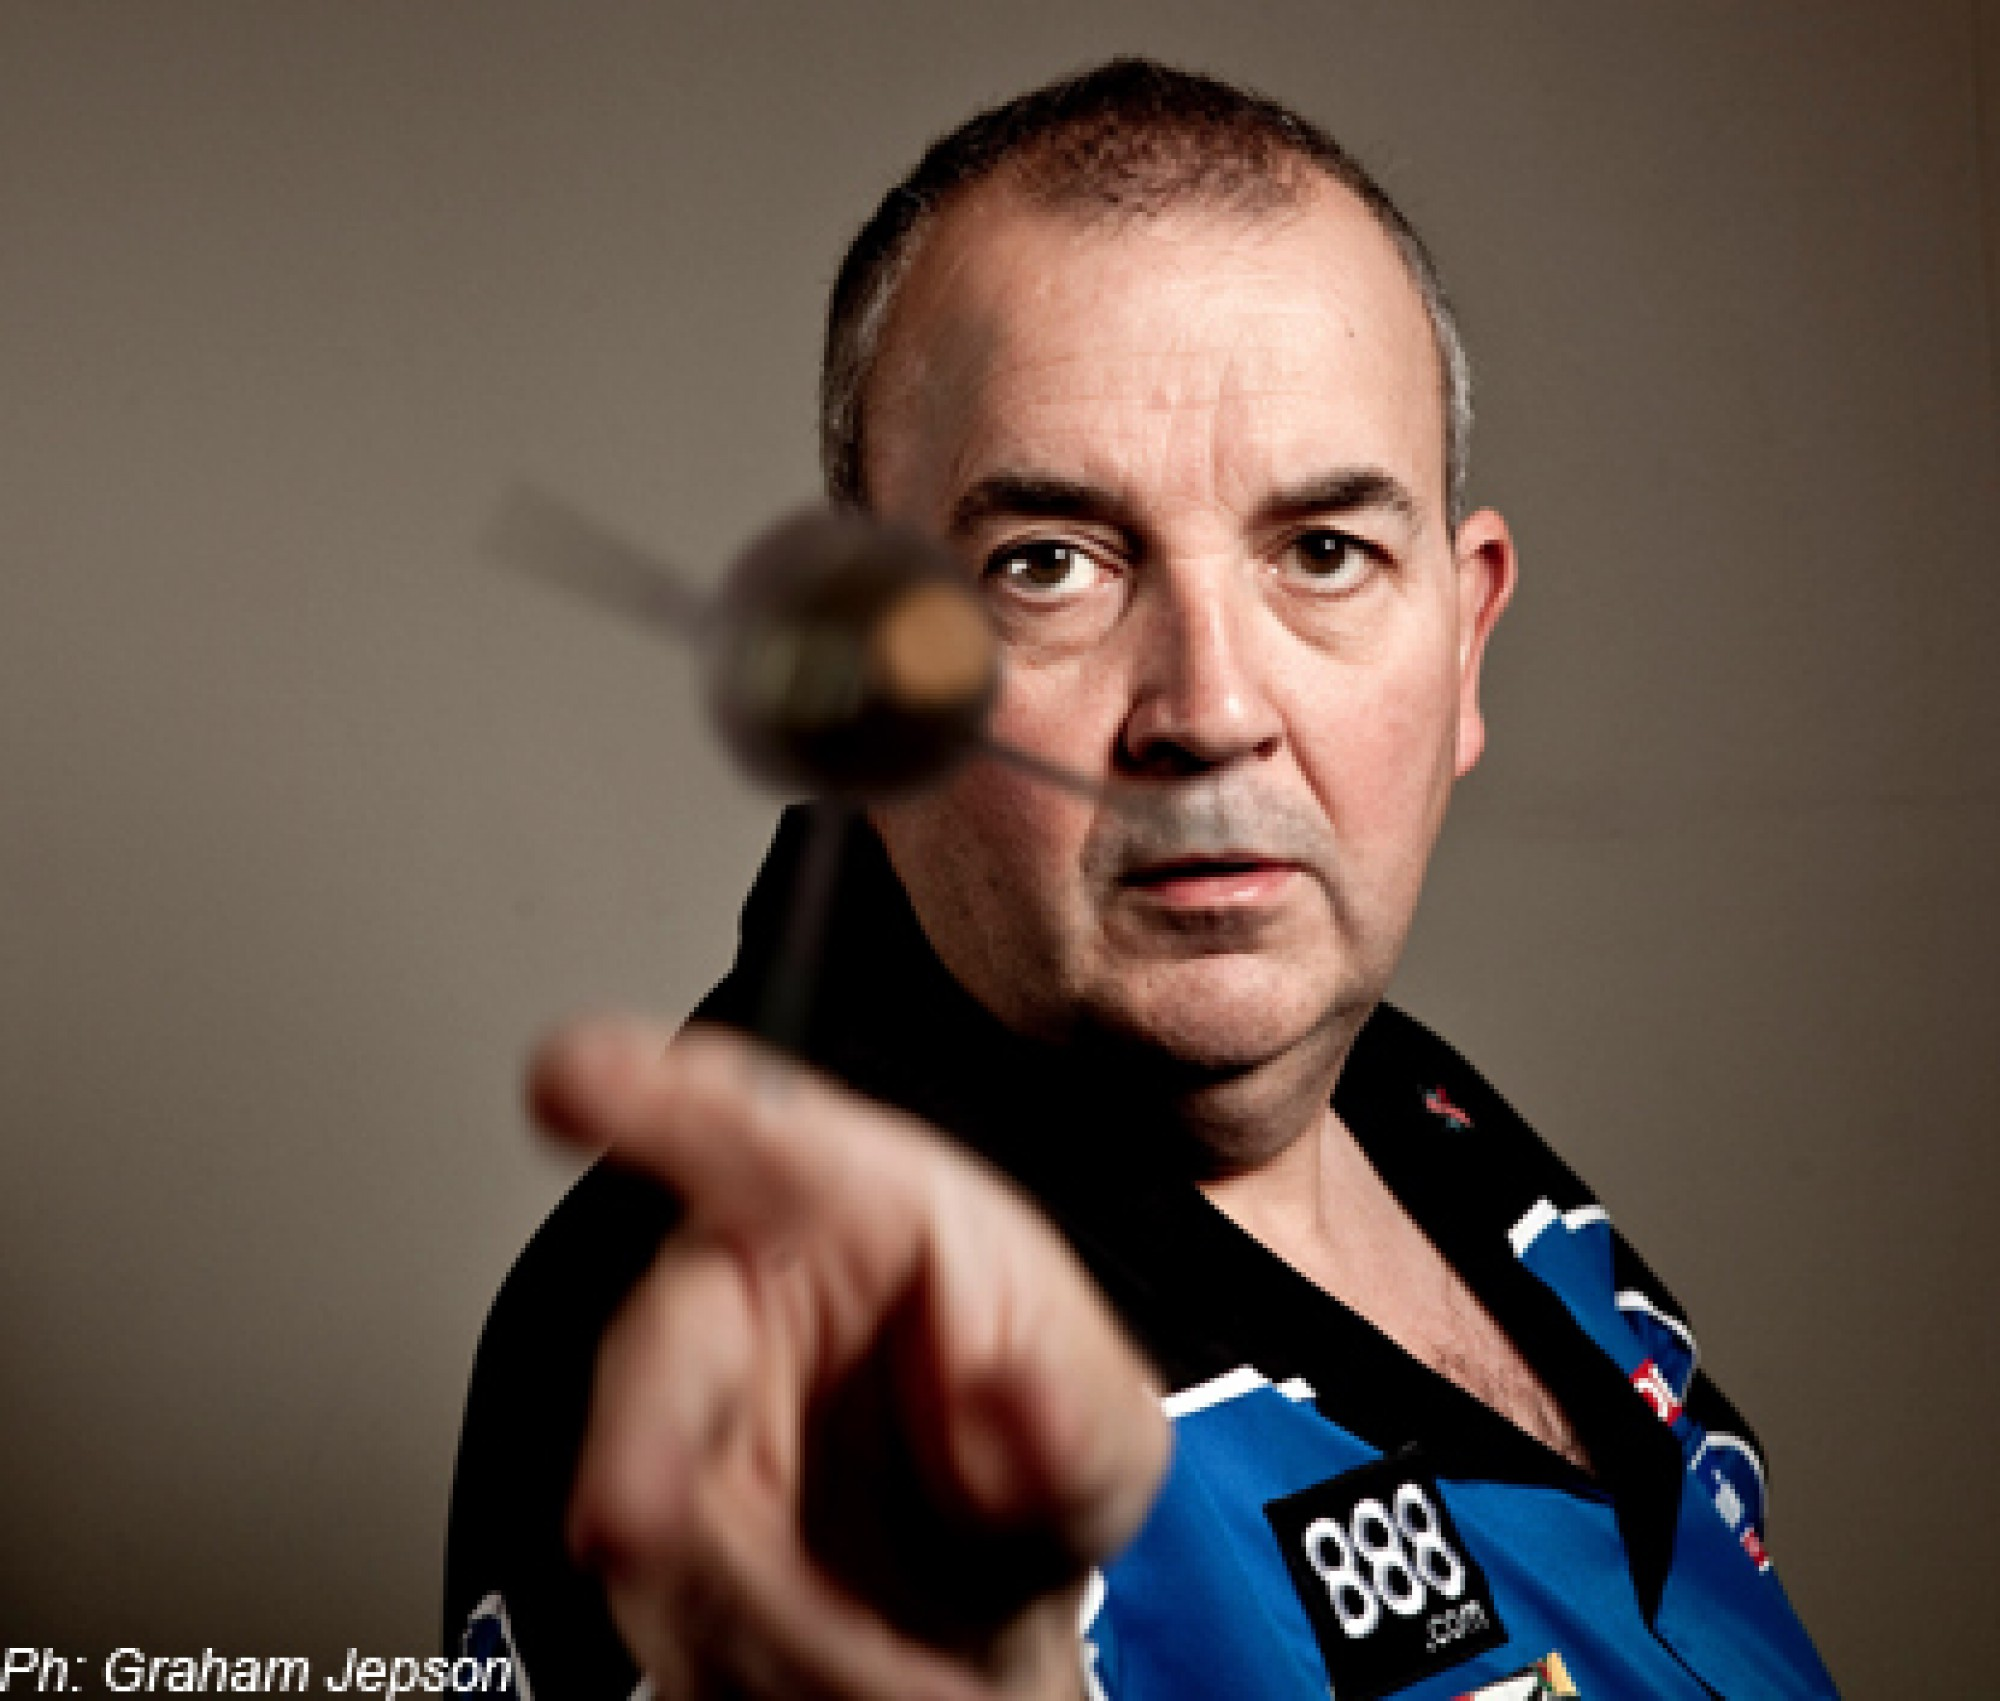 cropped-philtaylor-bullet-dart-pic.jpg